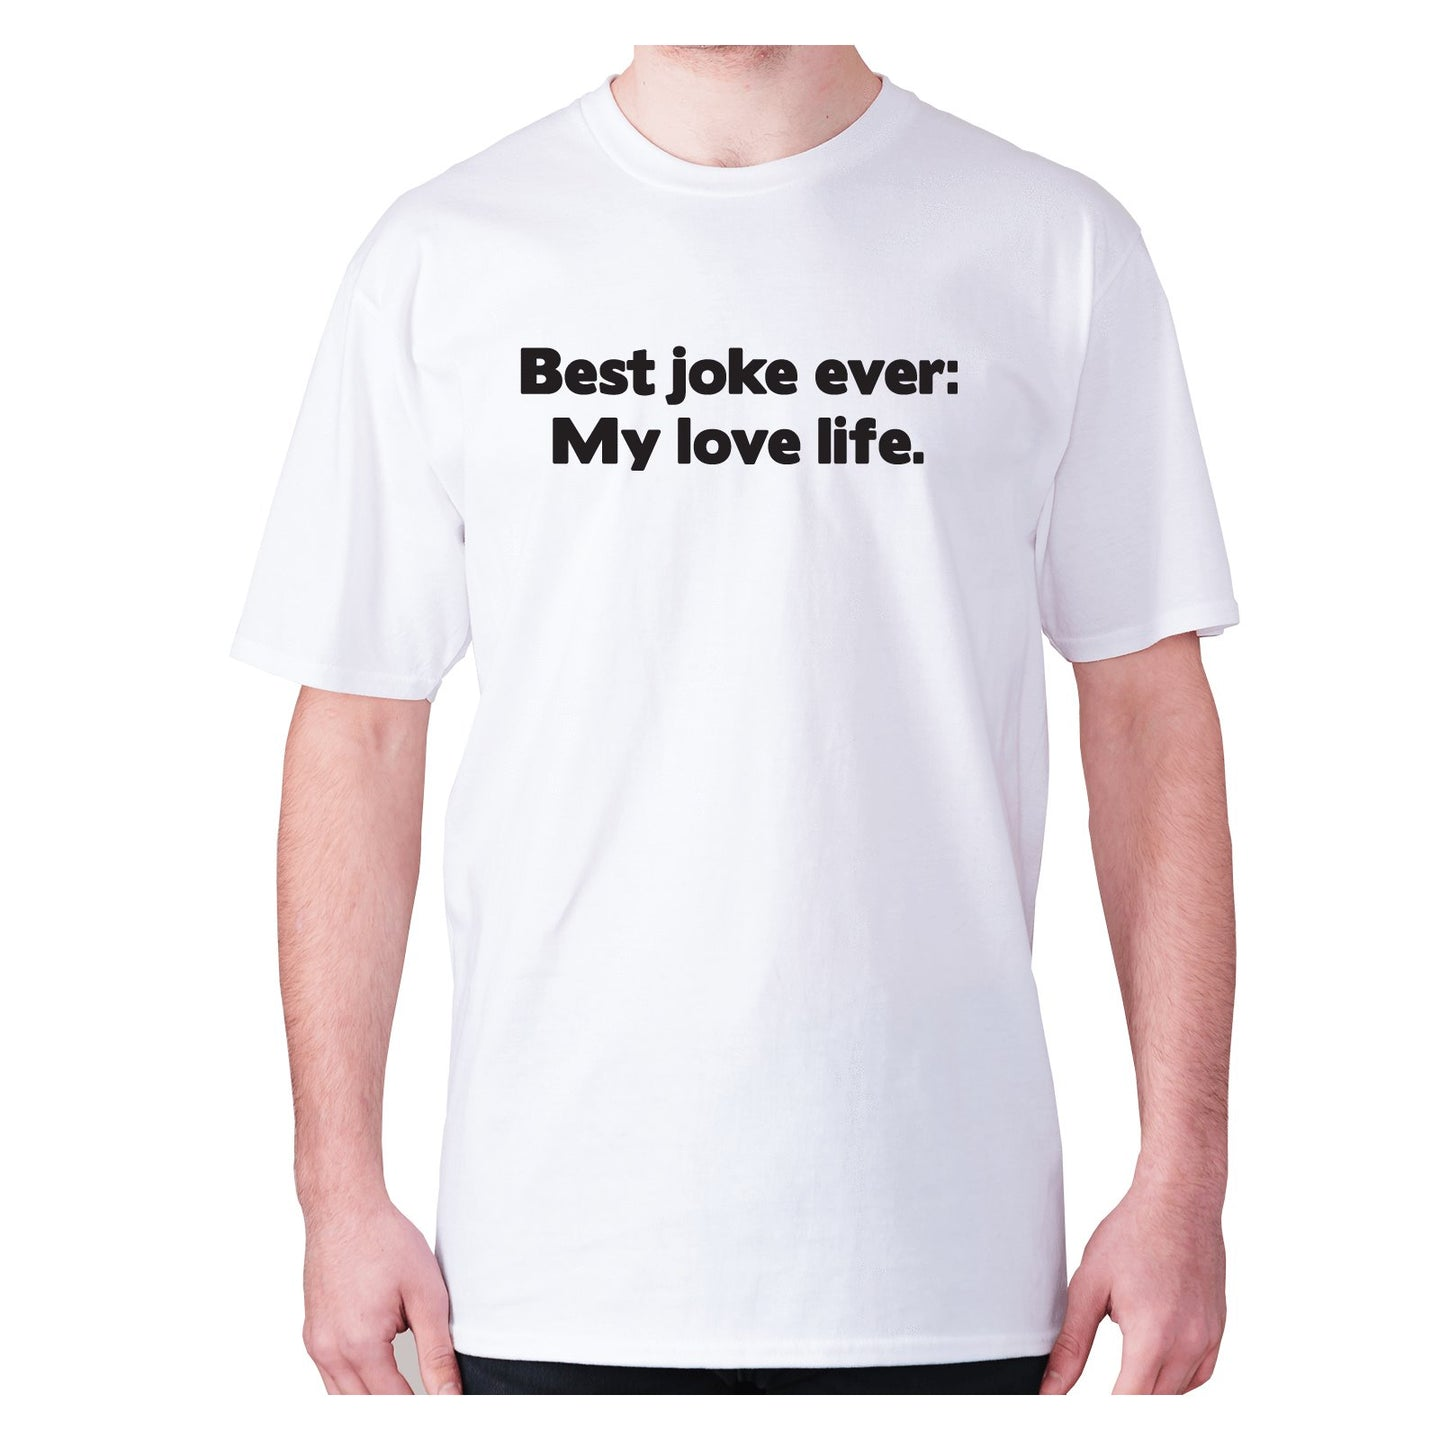 Best joke ever My love life - men's premium t-shirt - White / S - Graphic Gear